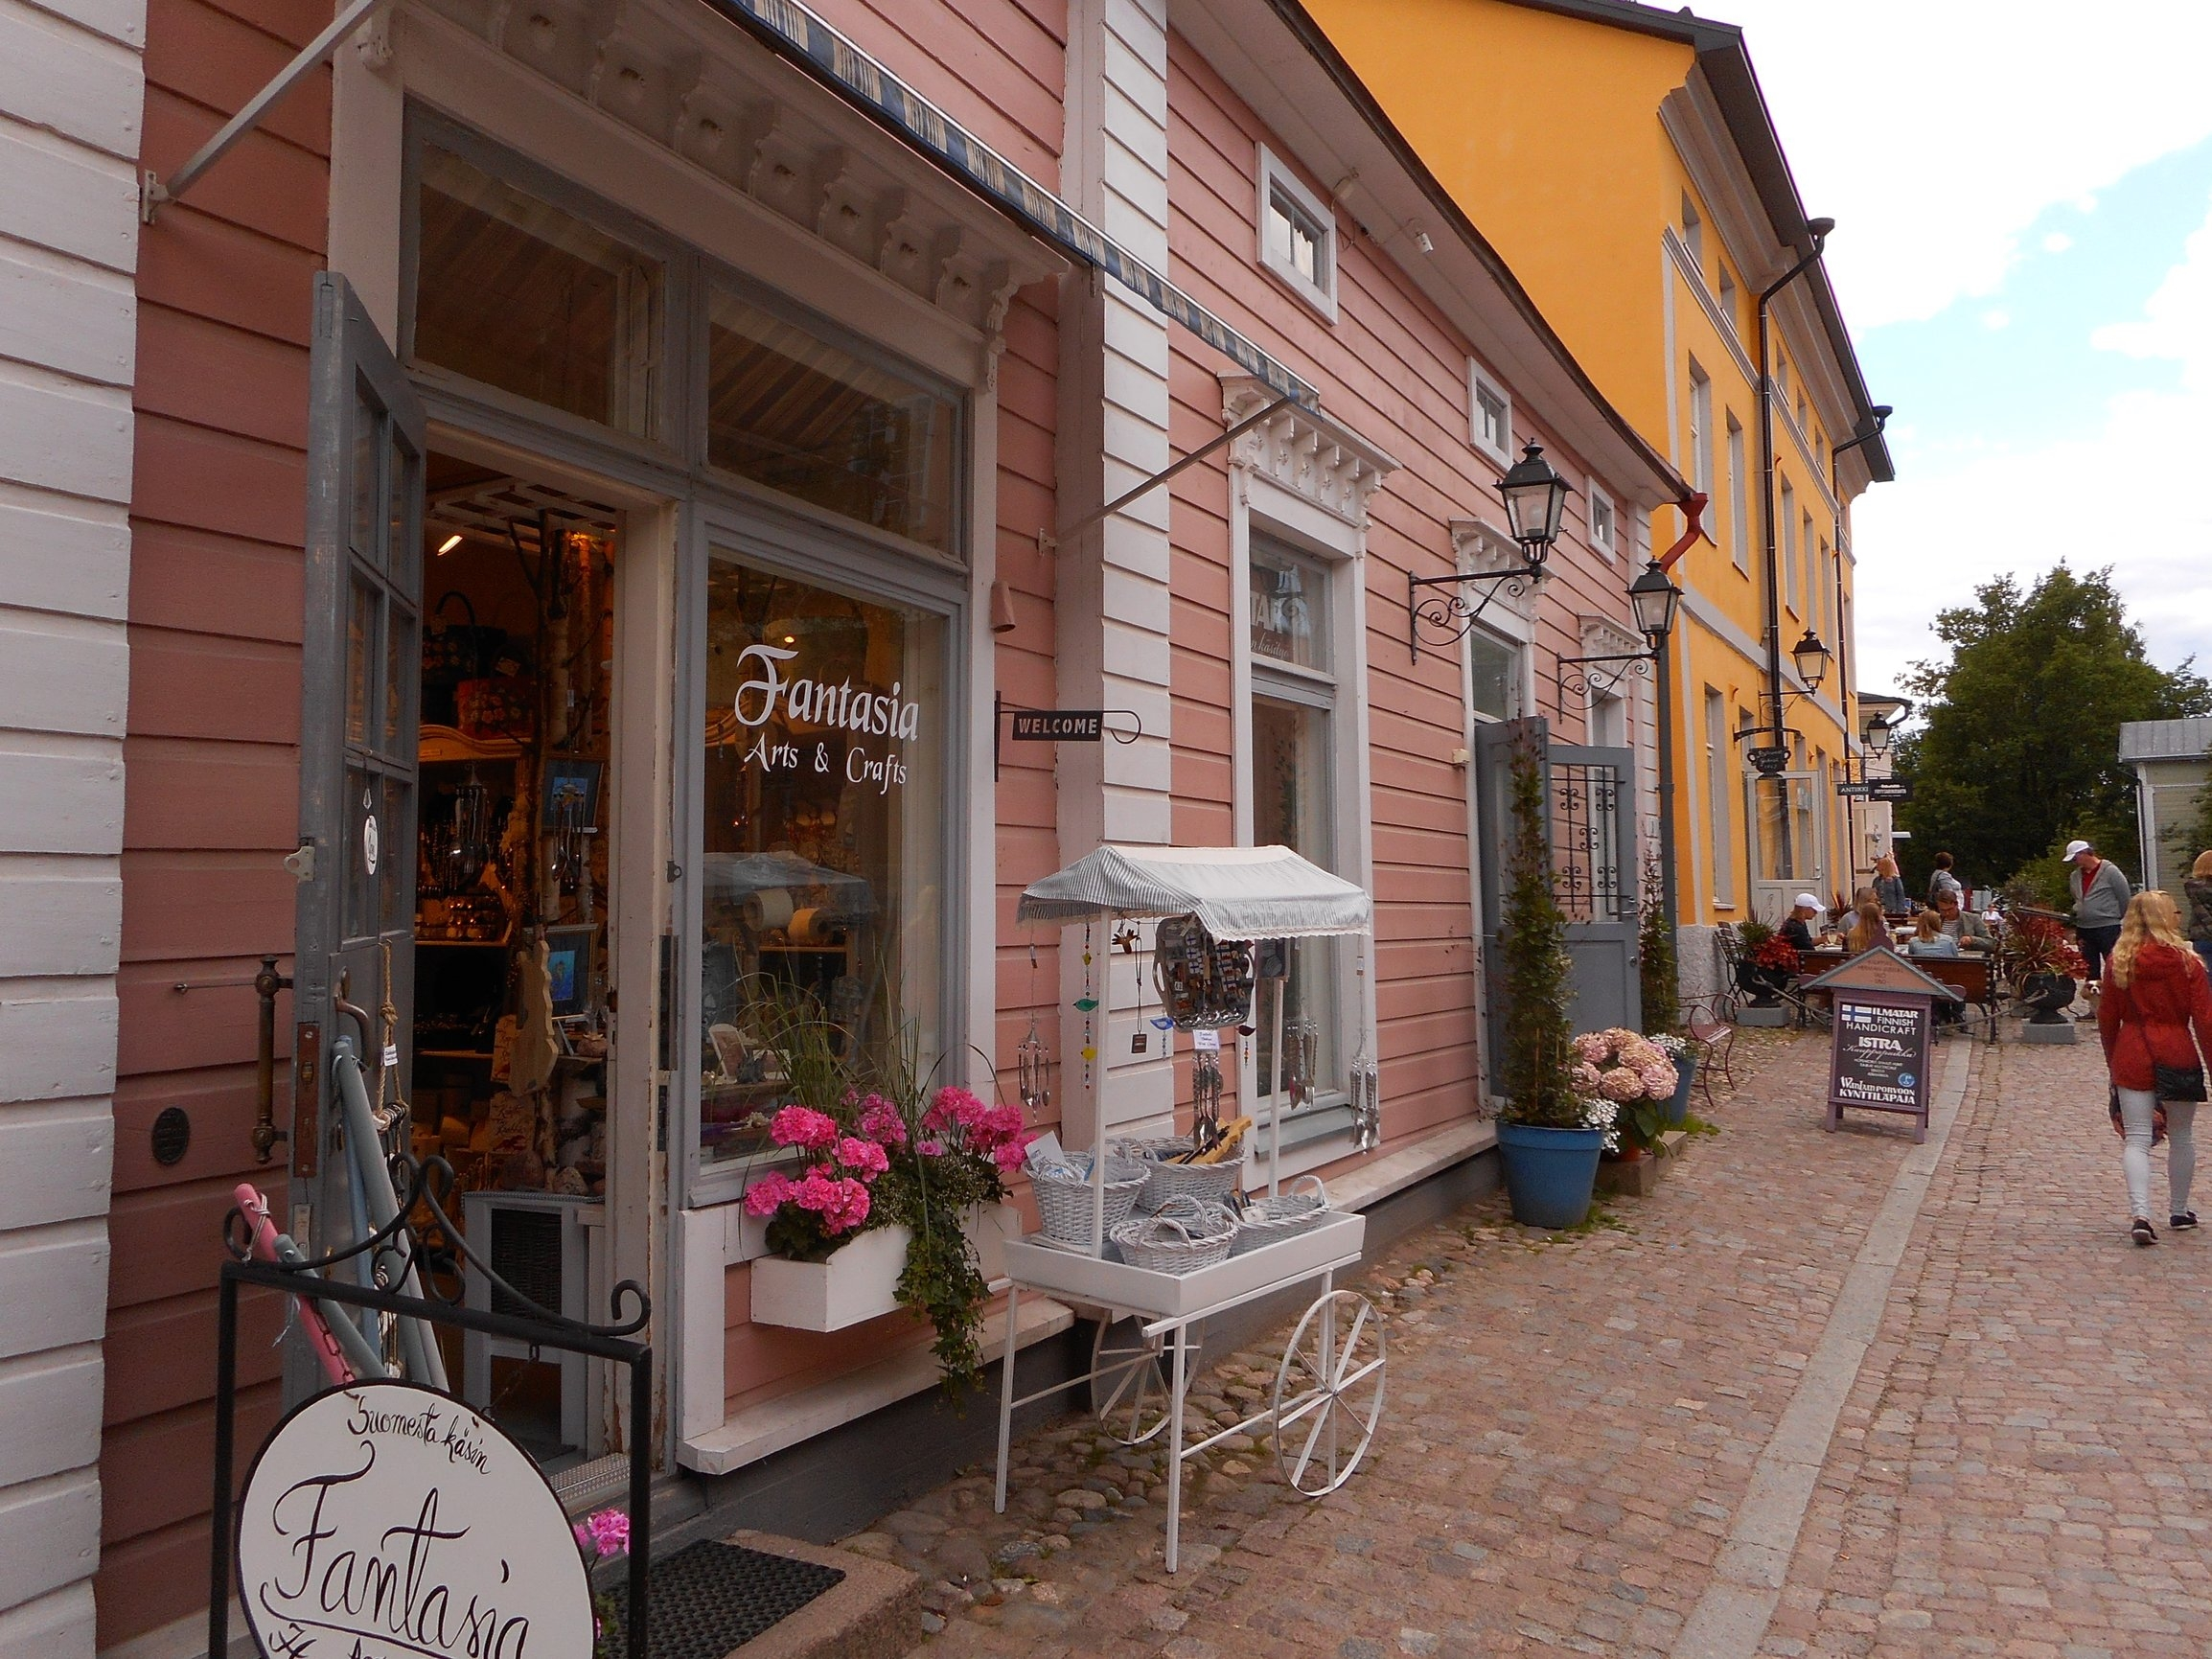 Porvoo medieval town  is very nice day trip destination especially in summer time.